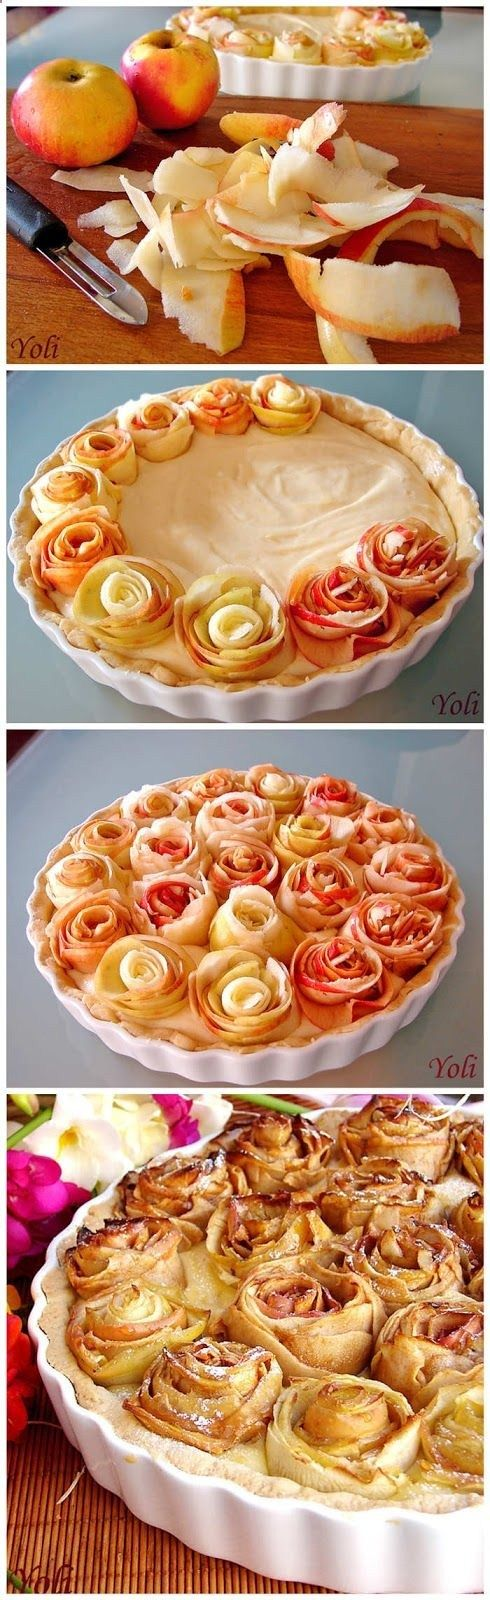 I'm not big on apple pie, but this is so pretty!